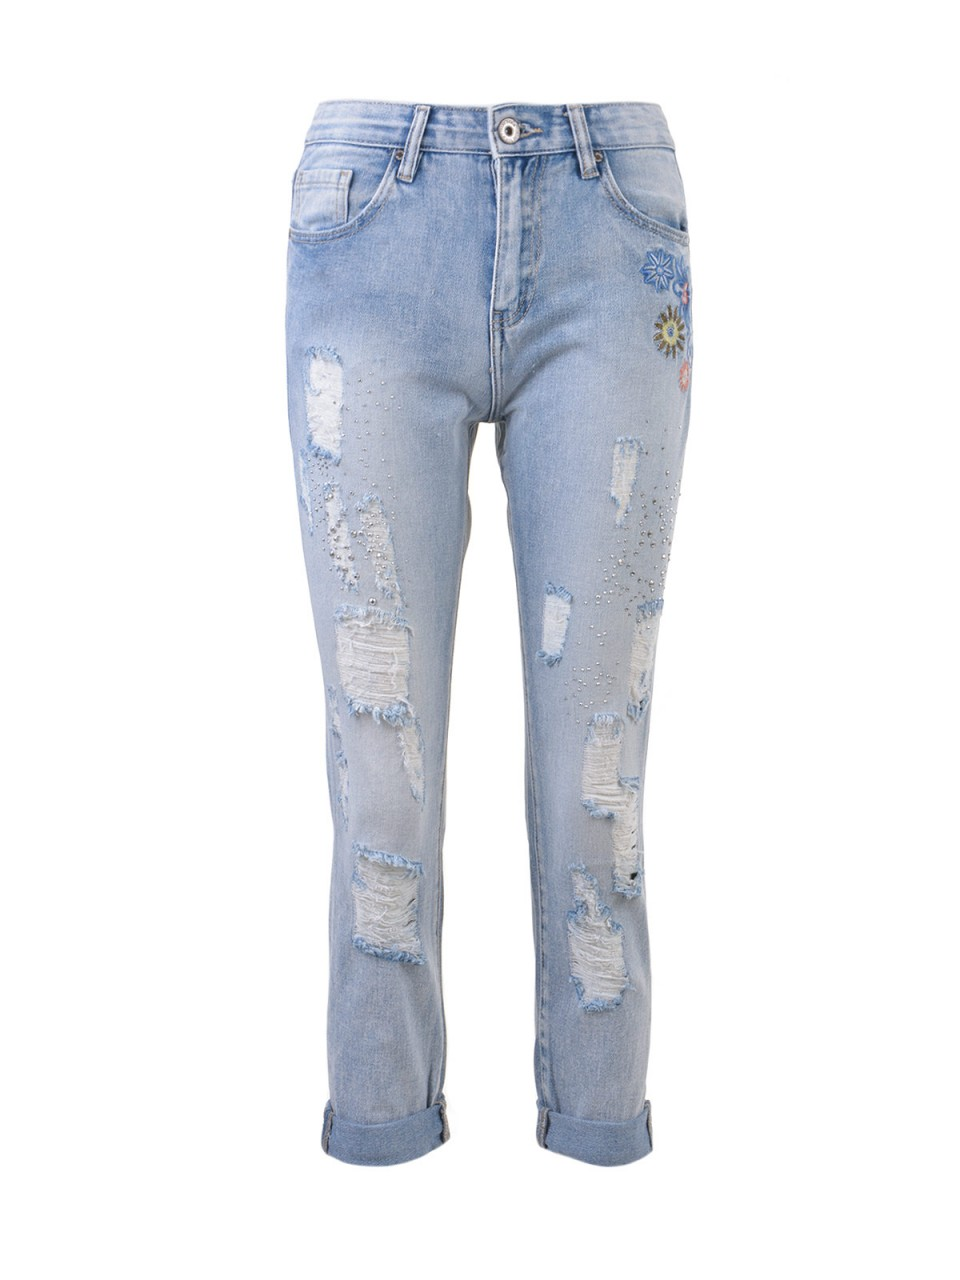 3D DENIM Damen Jeans, blau